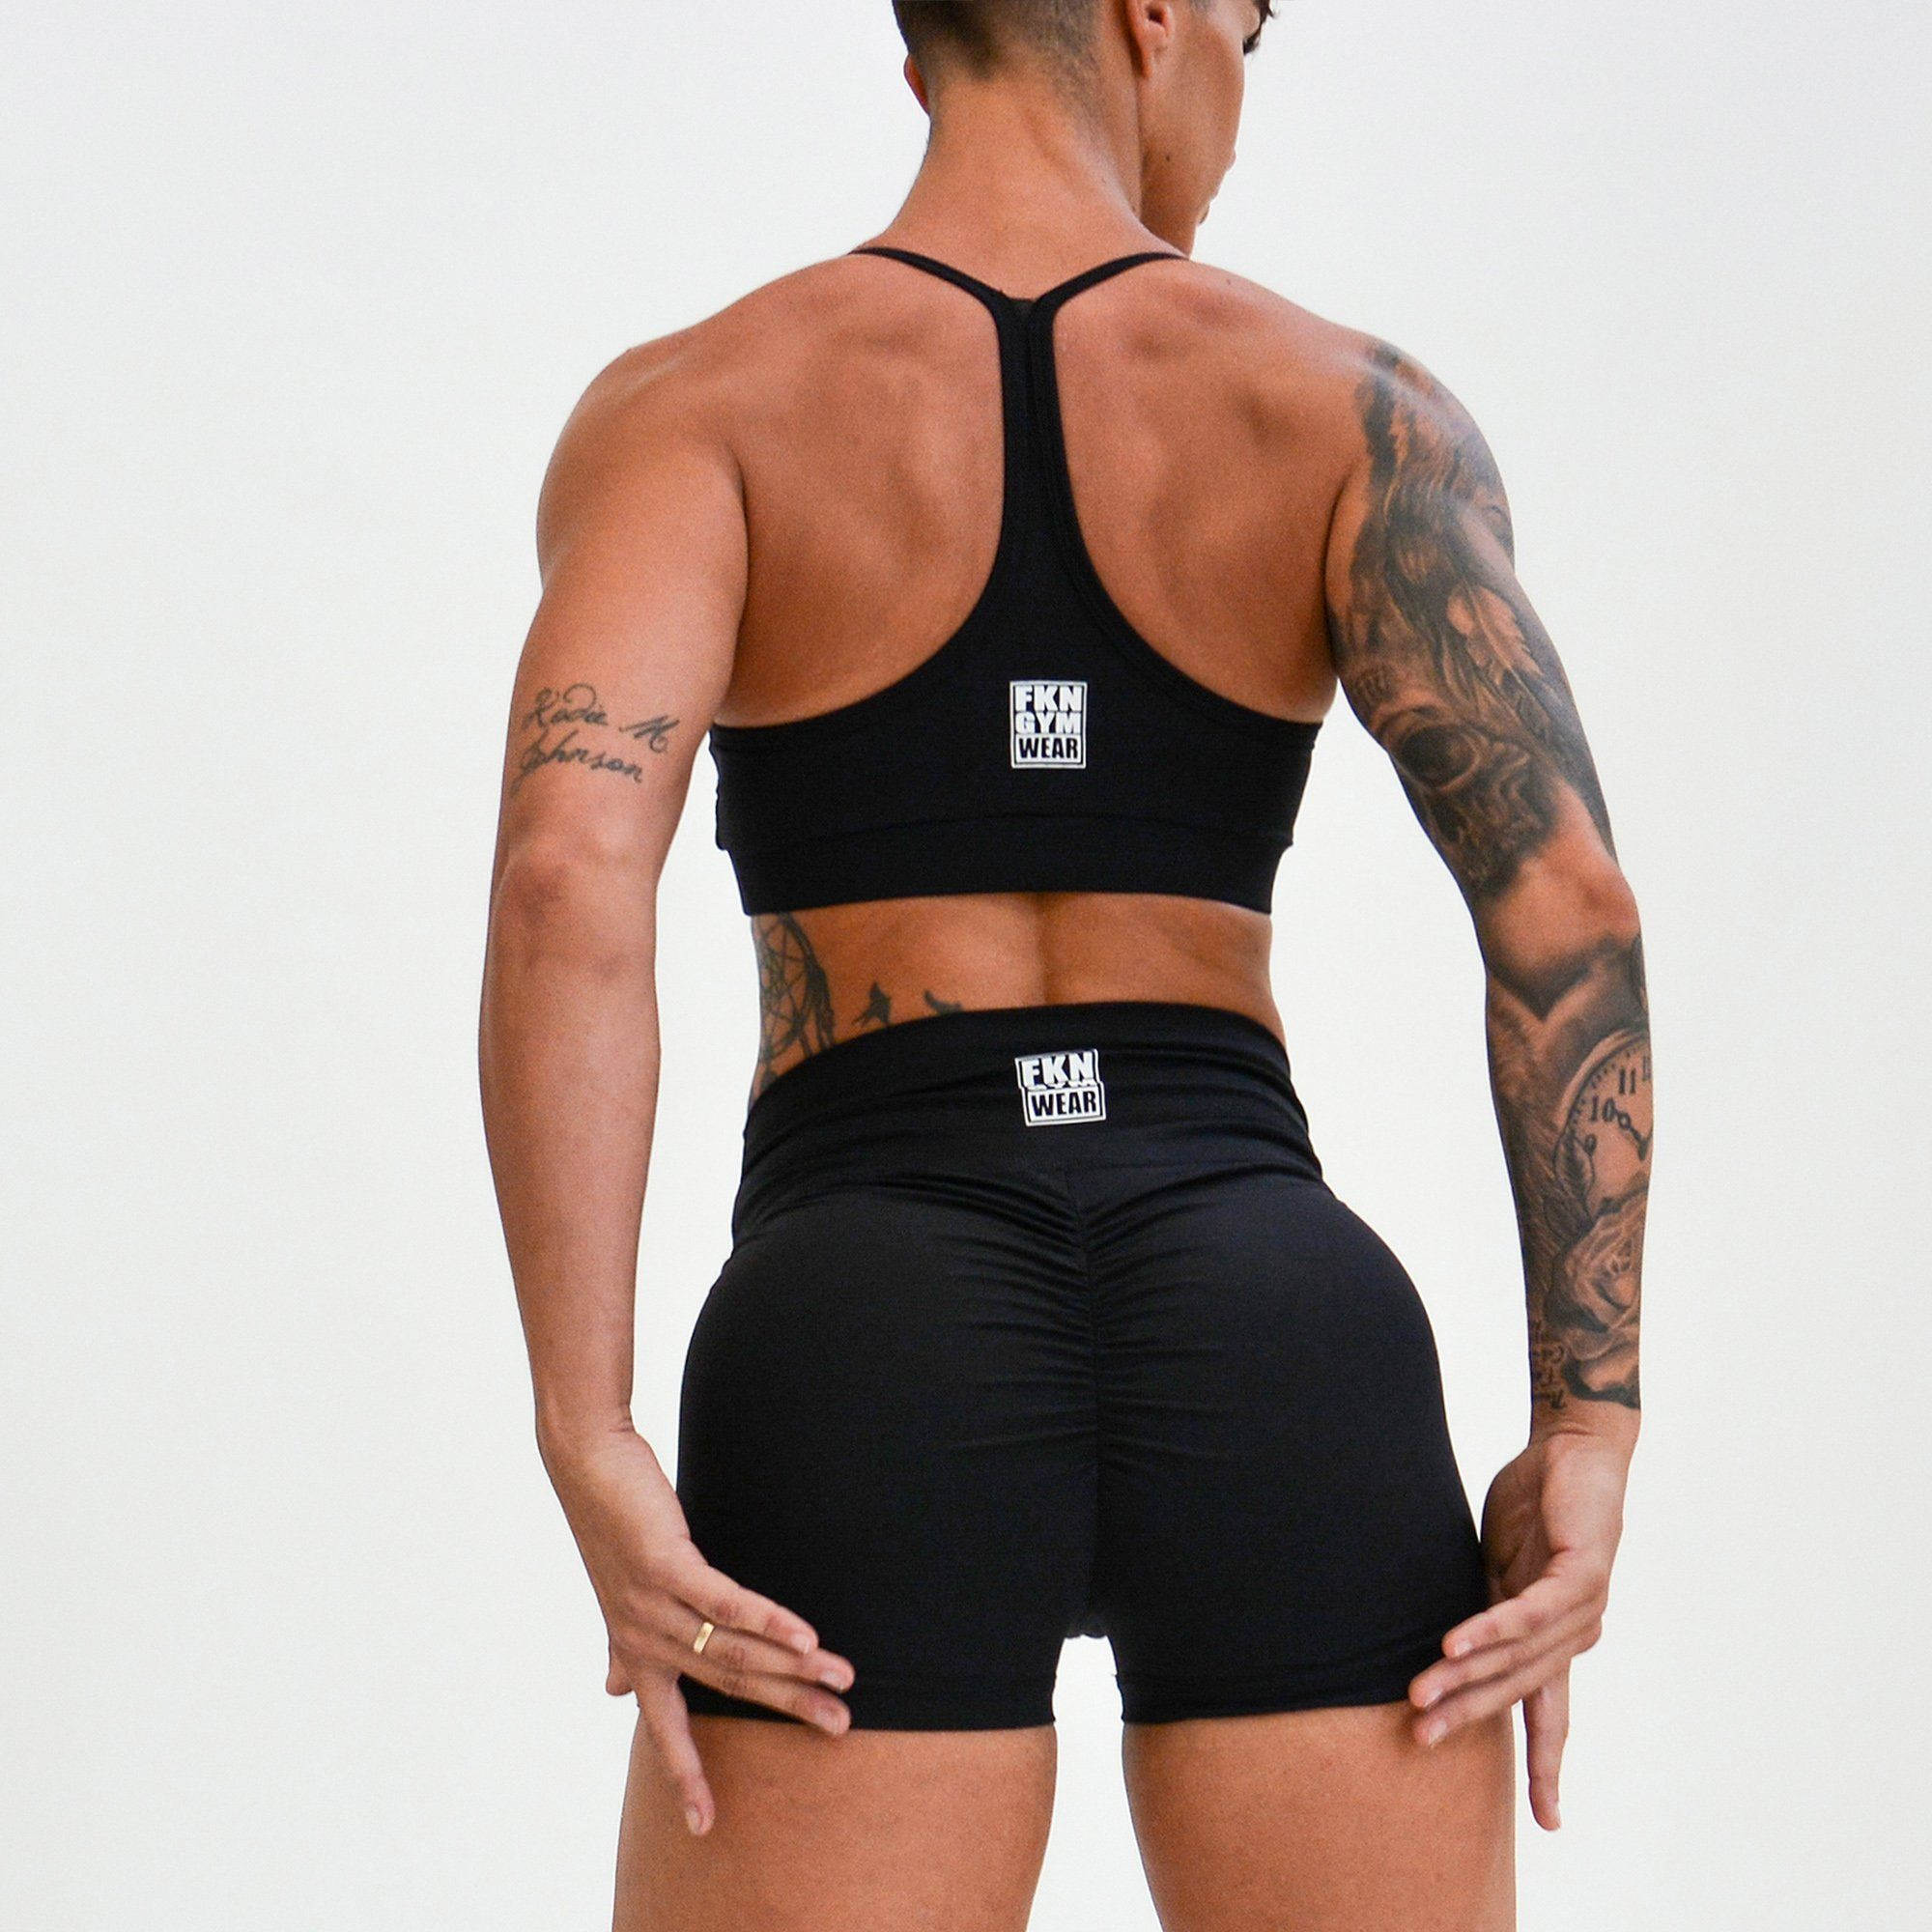 FKN Gym Wear High Waist Scrunch Shorts - Black